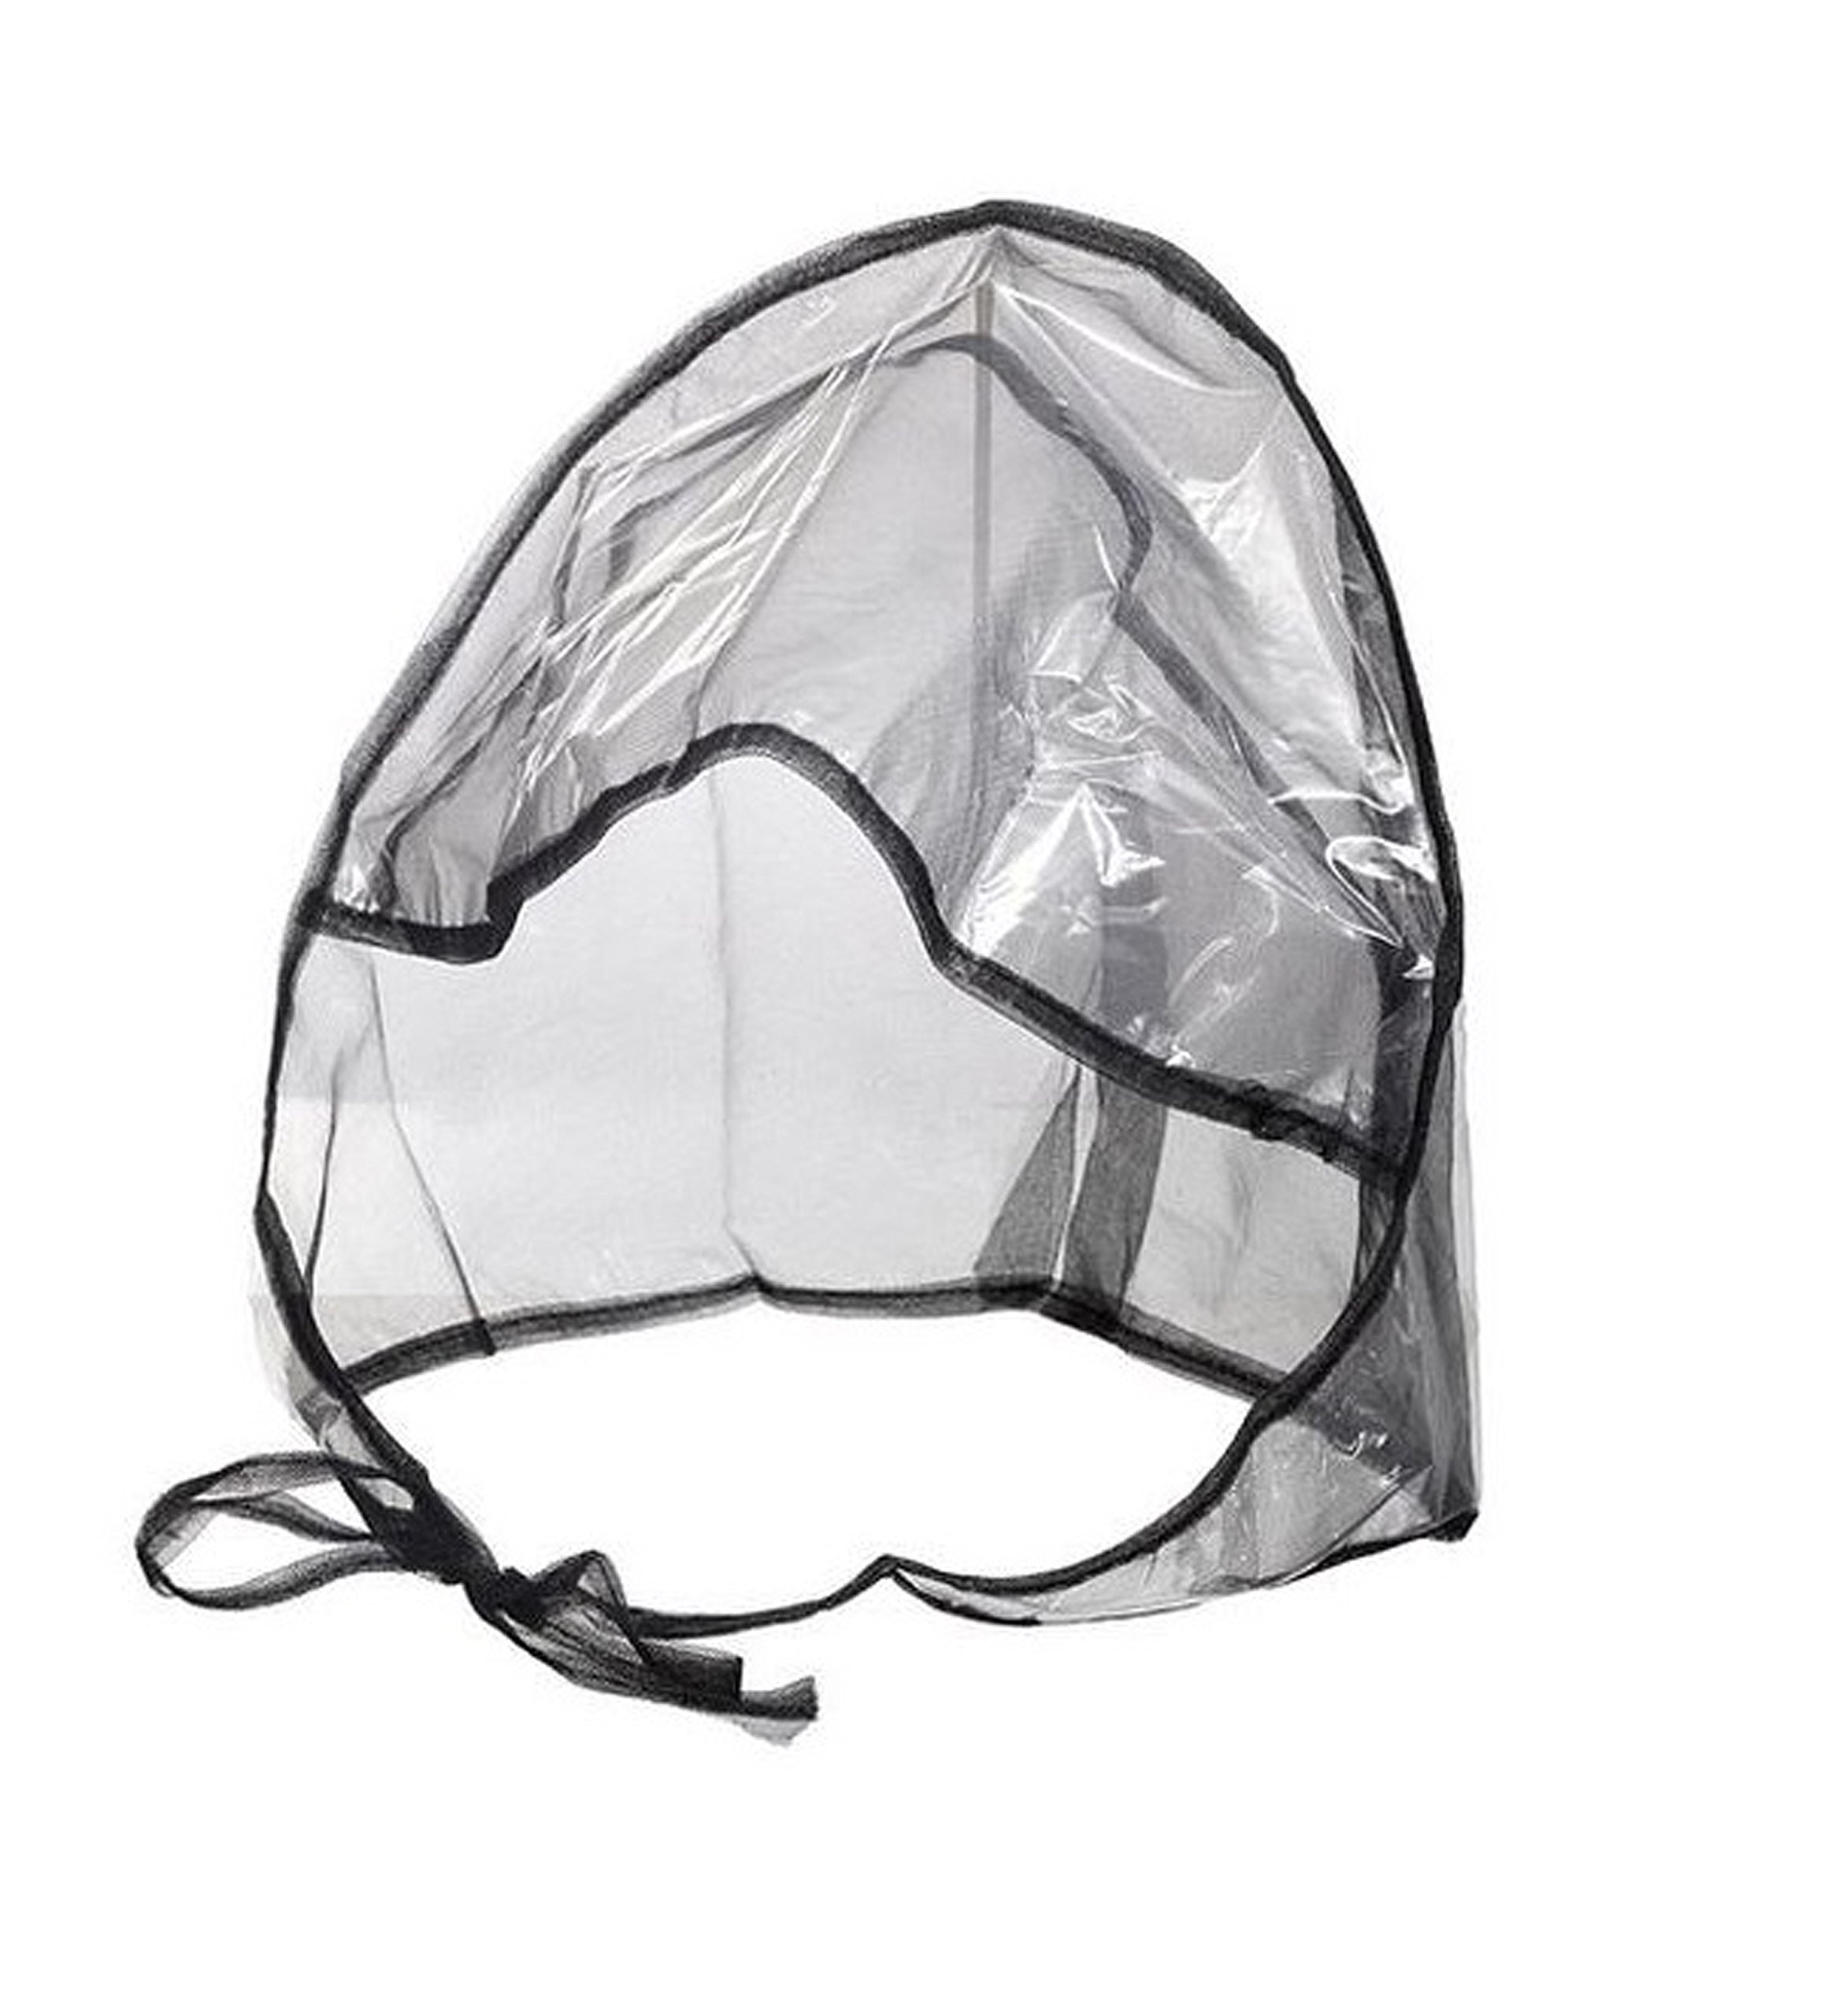 FIT RITE Rain Bonnet with Full Cut Visor & Netting - One Size Fits All (Black) Set of 12 by Fit Rite